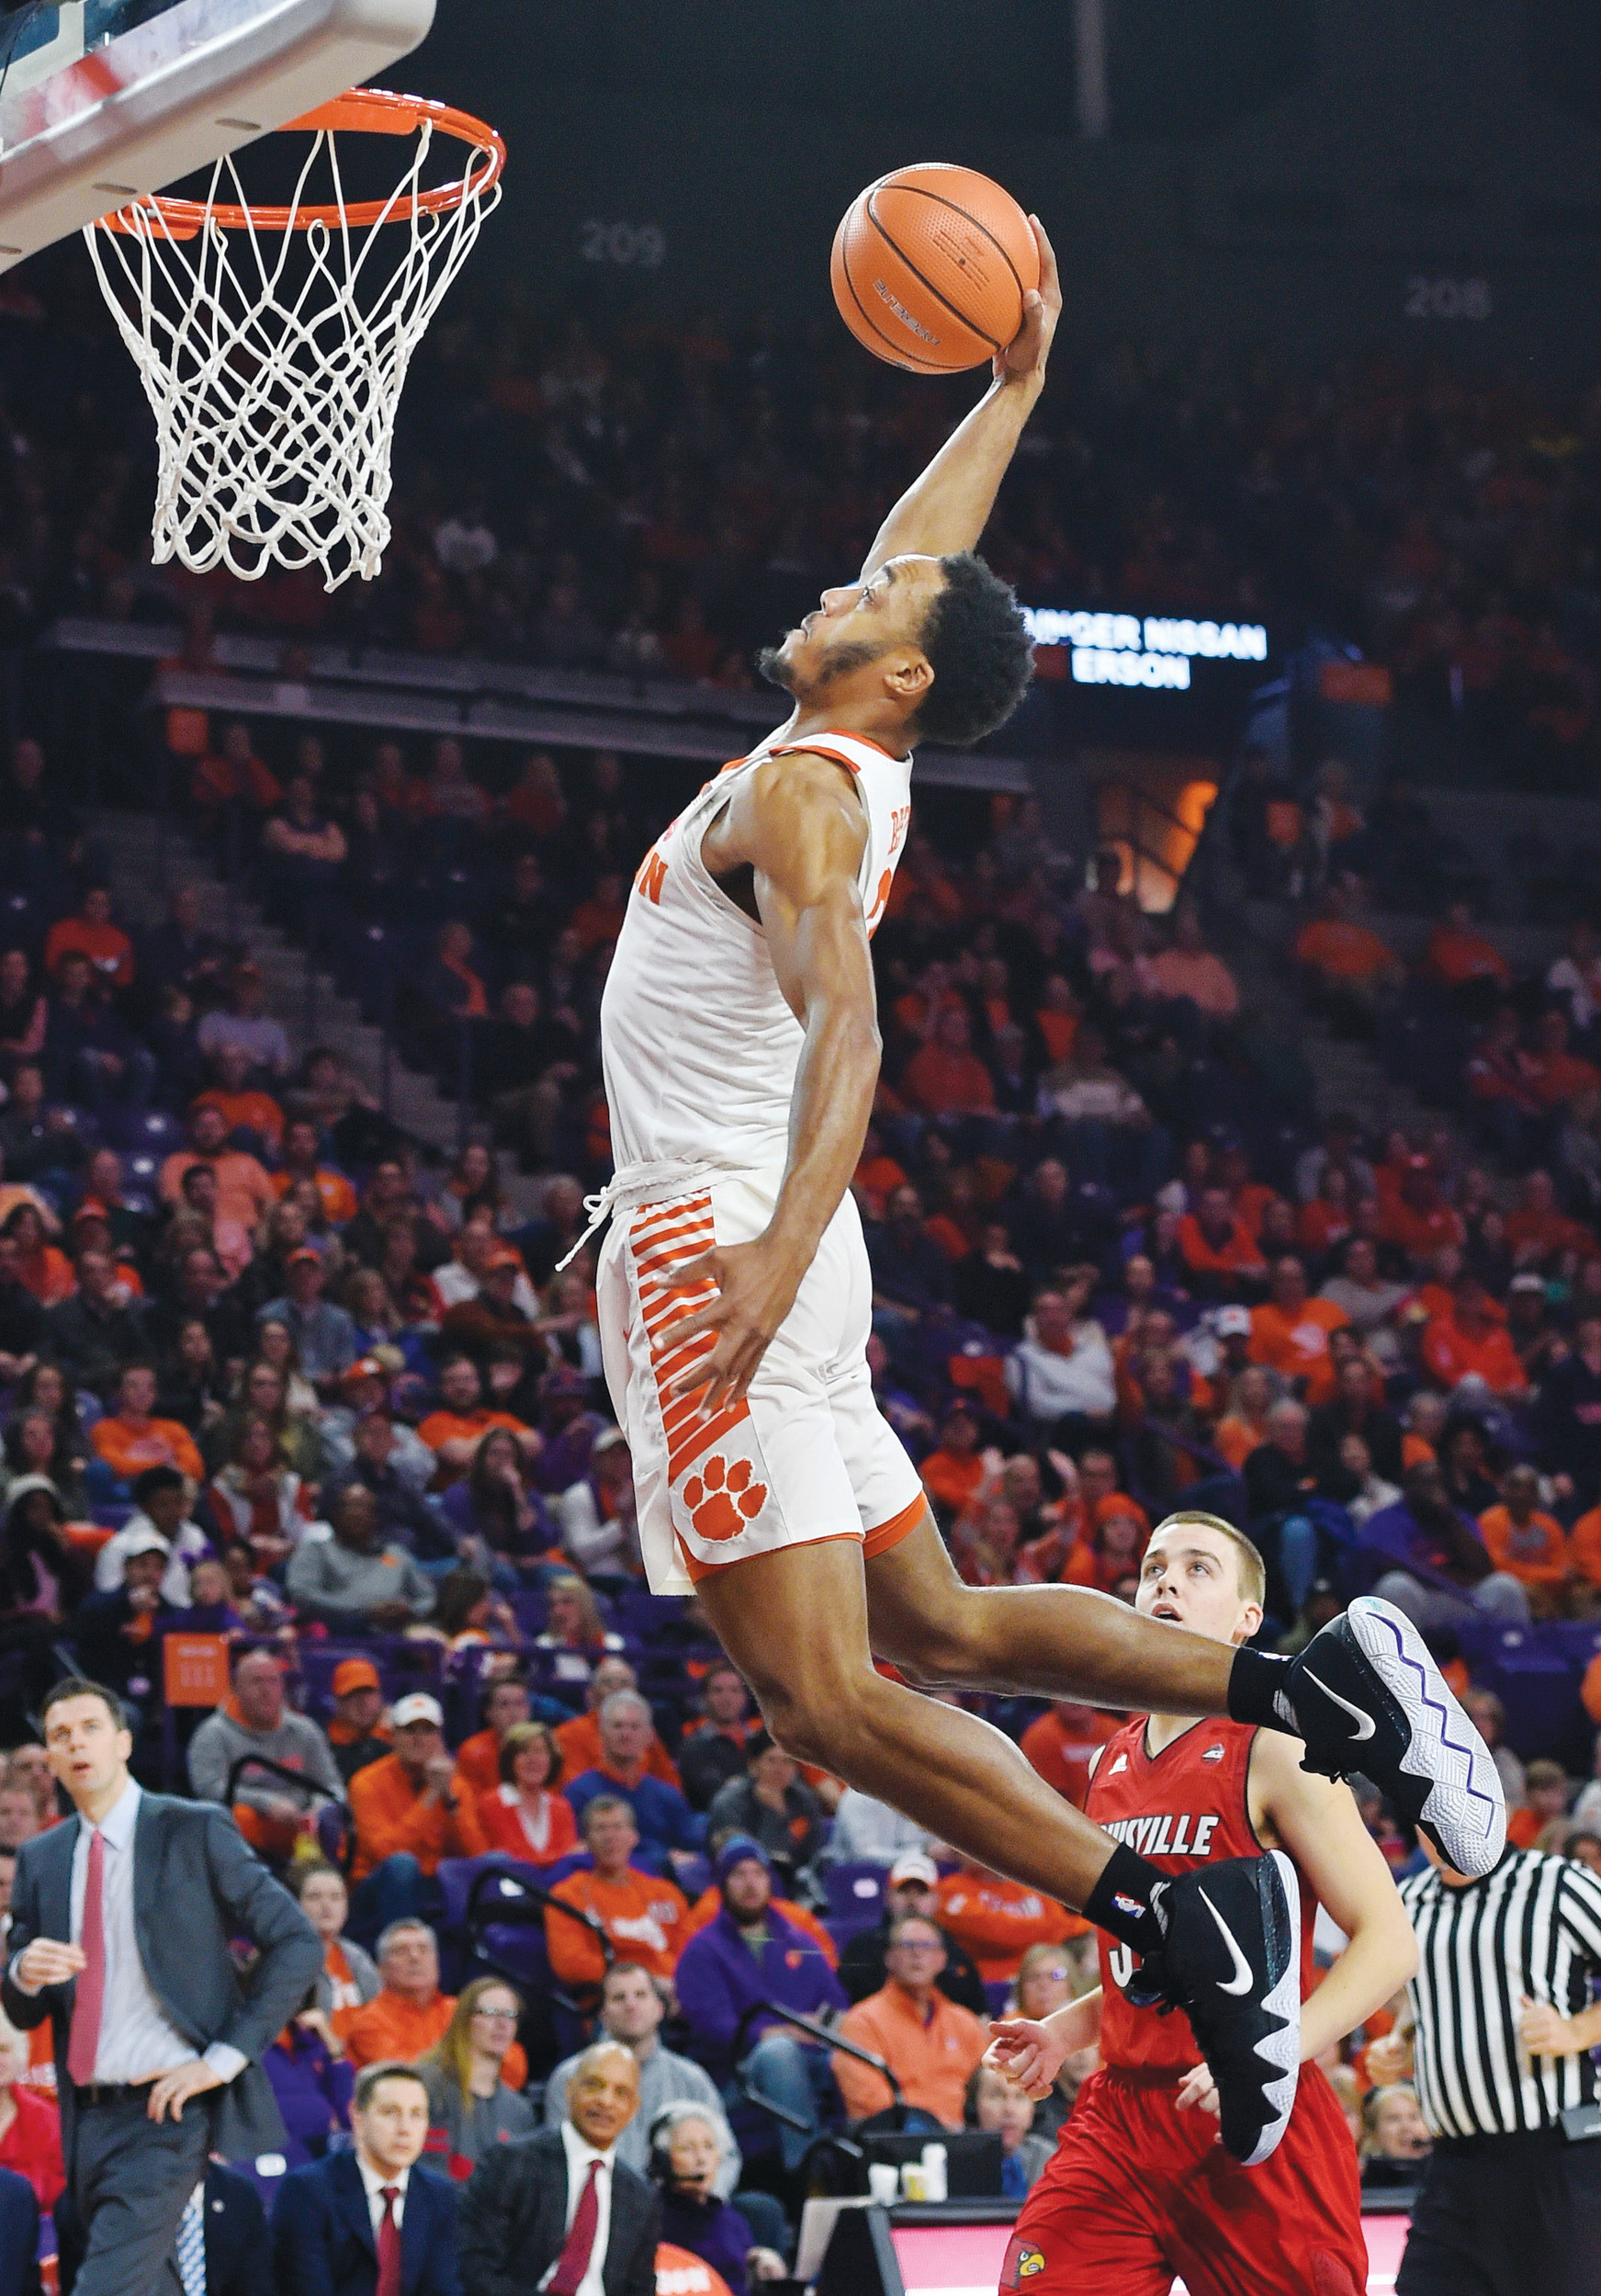 Clemson's Marcquise Reed goes up for a dunk during the first half of the Tigers' 74-69 overtime victory over Louisville on Saturday in Clemson.